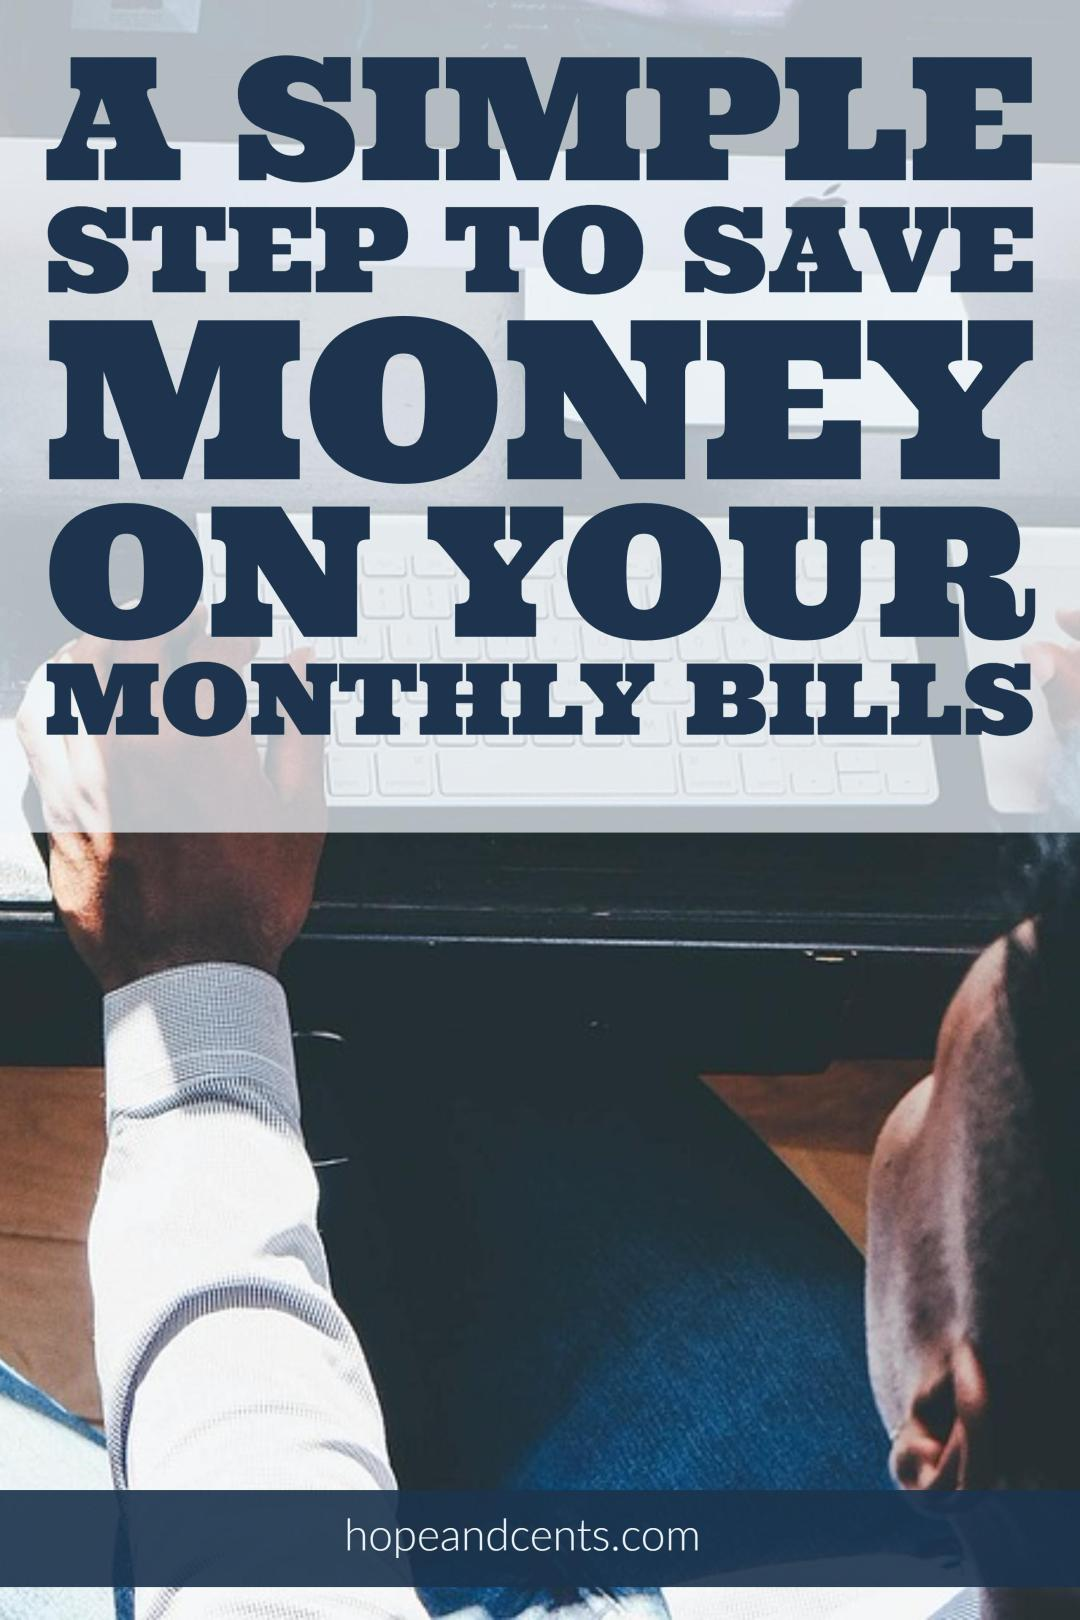 Are you looking to save money on your monthly bills? I love this simple step to take that will save money and stretch any budget further. | saving money | how to save money | how to spend less | frugal living | #money #finance #frugal #frugaliving #budgeting